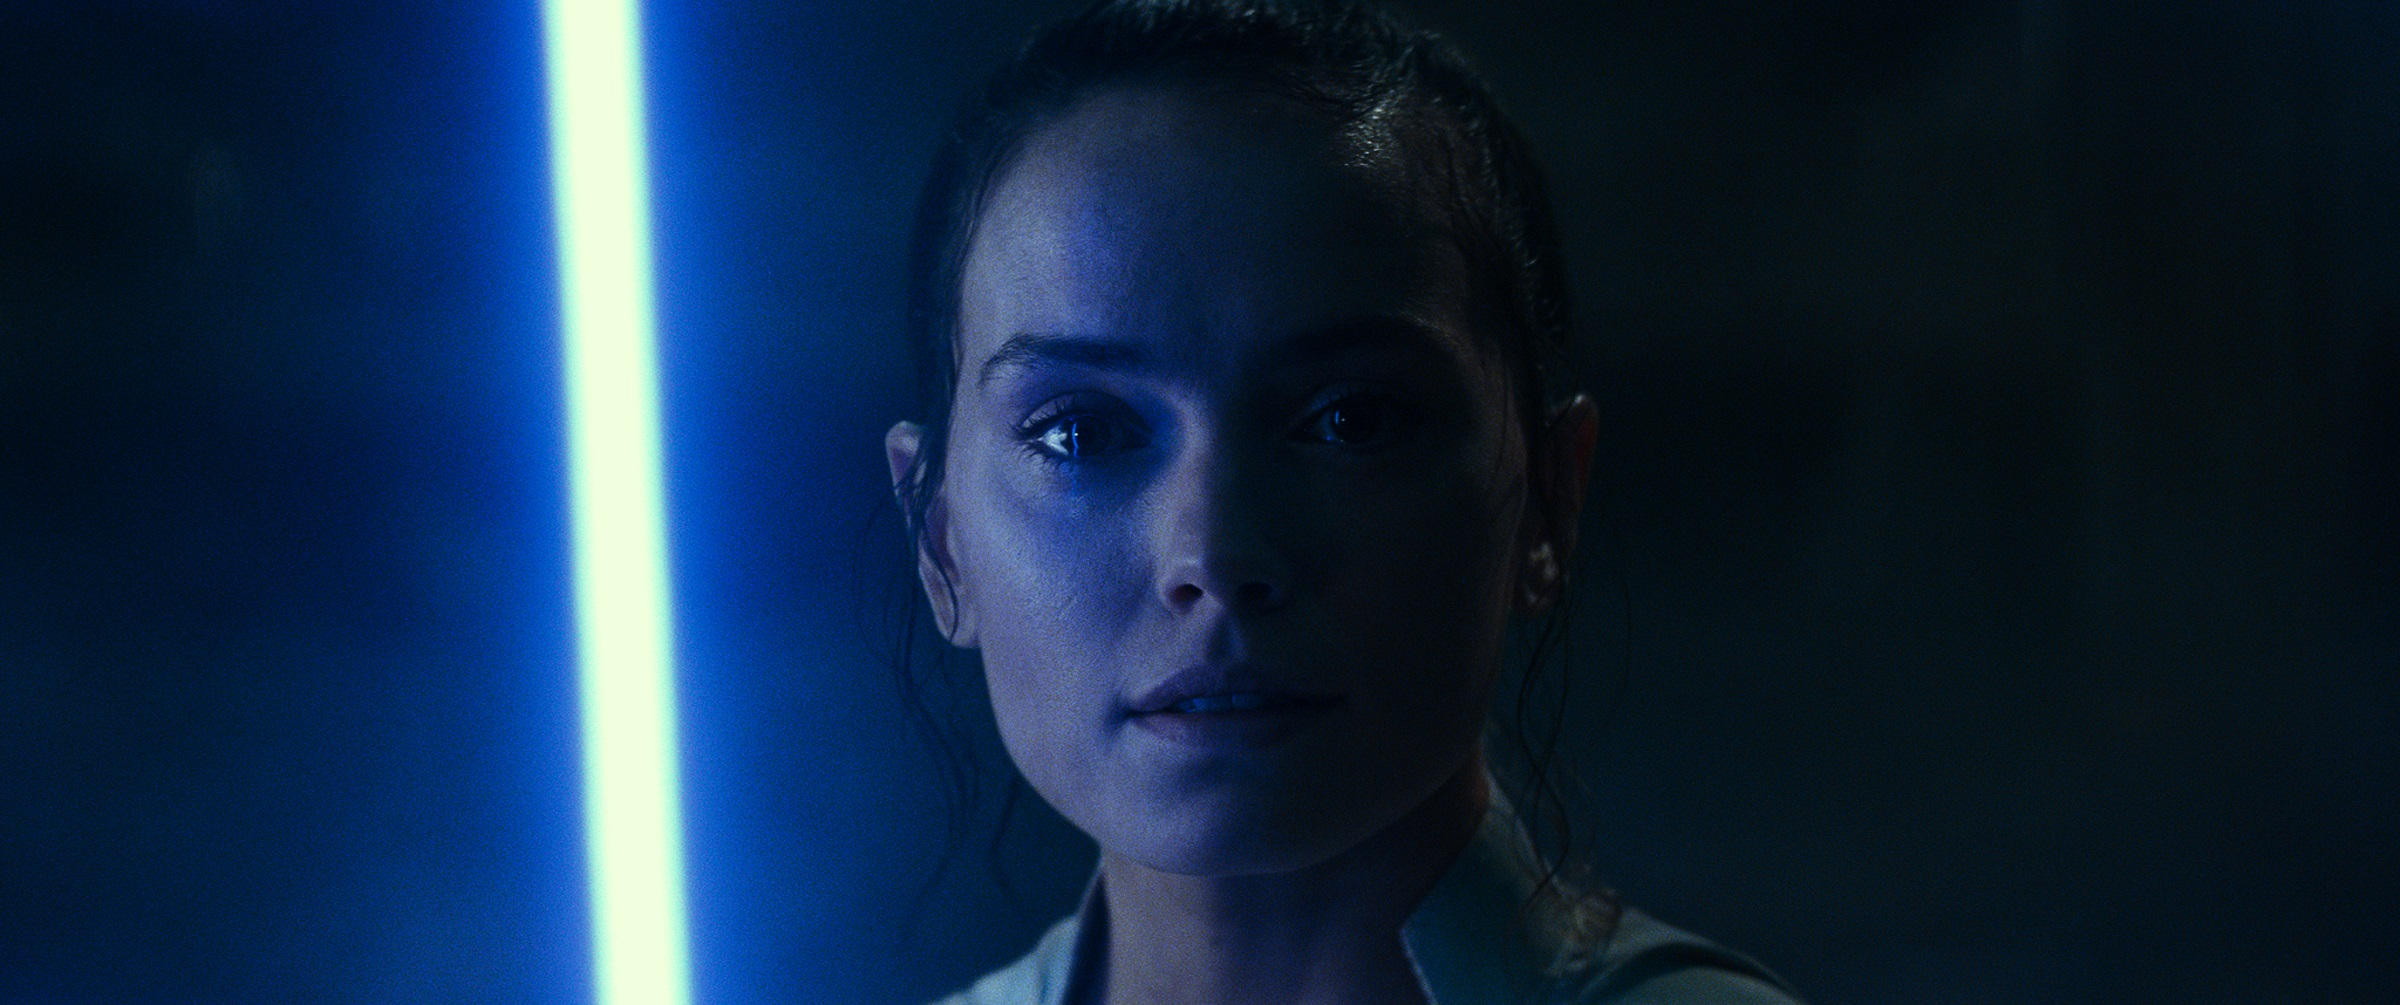 Rey lights up her lightsaber in a pitch-black temple.